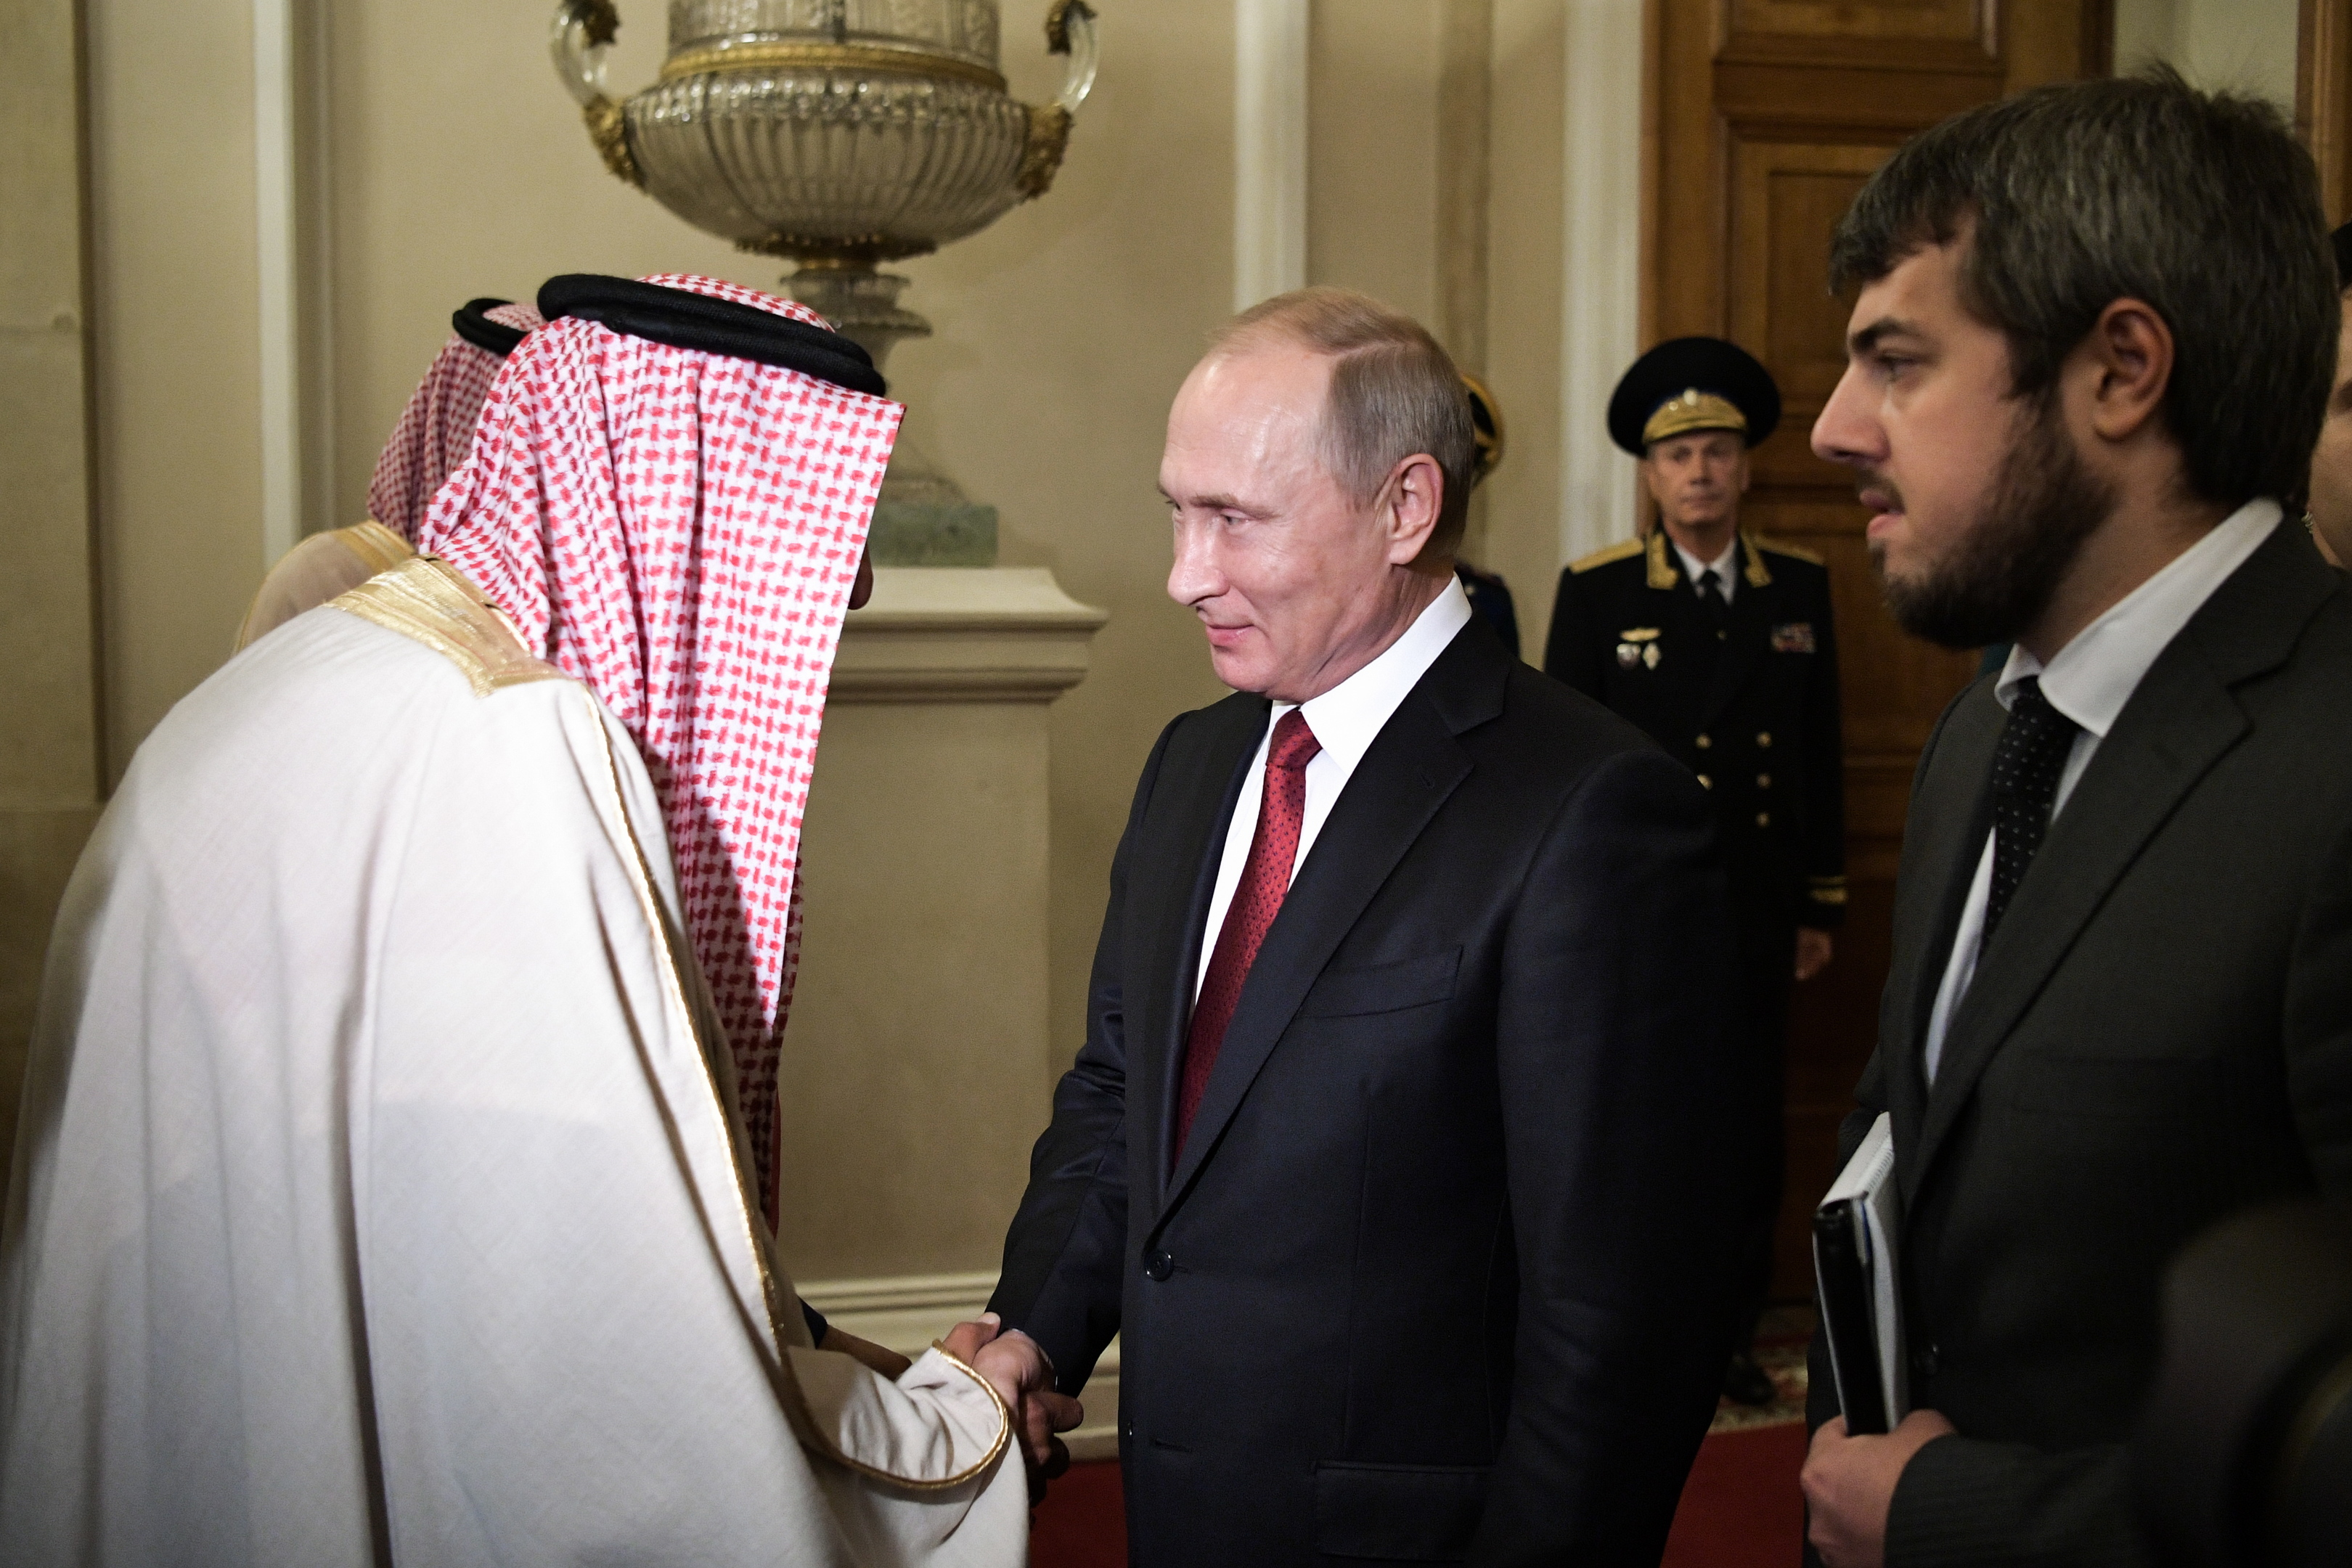 King Salman bin Abdulaziz Al Saud (L) of Saudi Arabia shakes hands with Russia's President Vladimir Putin (C) following their talks at the Moscow Kremlin. Alexei Nikolsky/Russian Presidential Press and Information Office/TASS (Photo by Alexei NikolskyTASS via Getty Images)